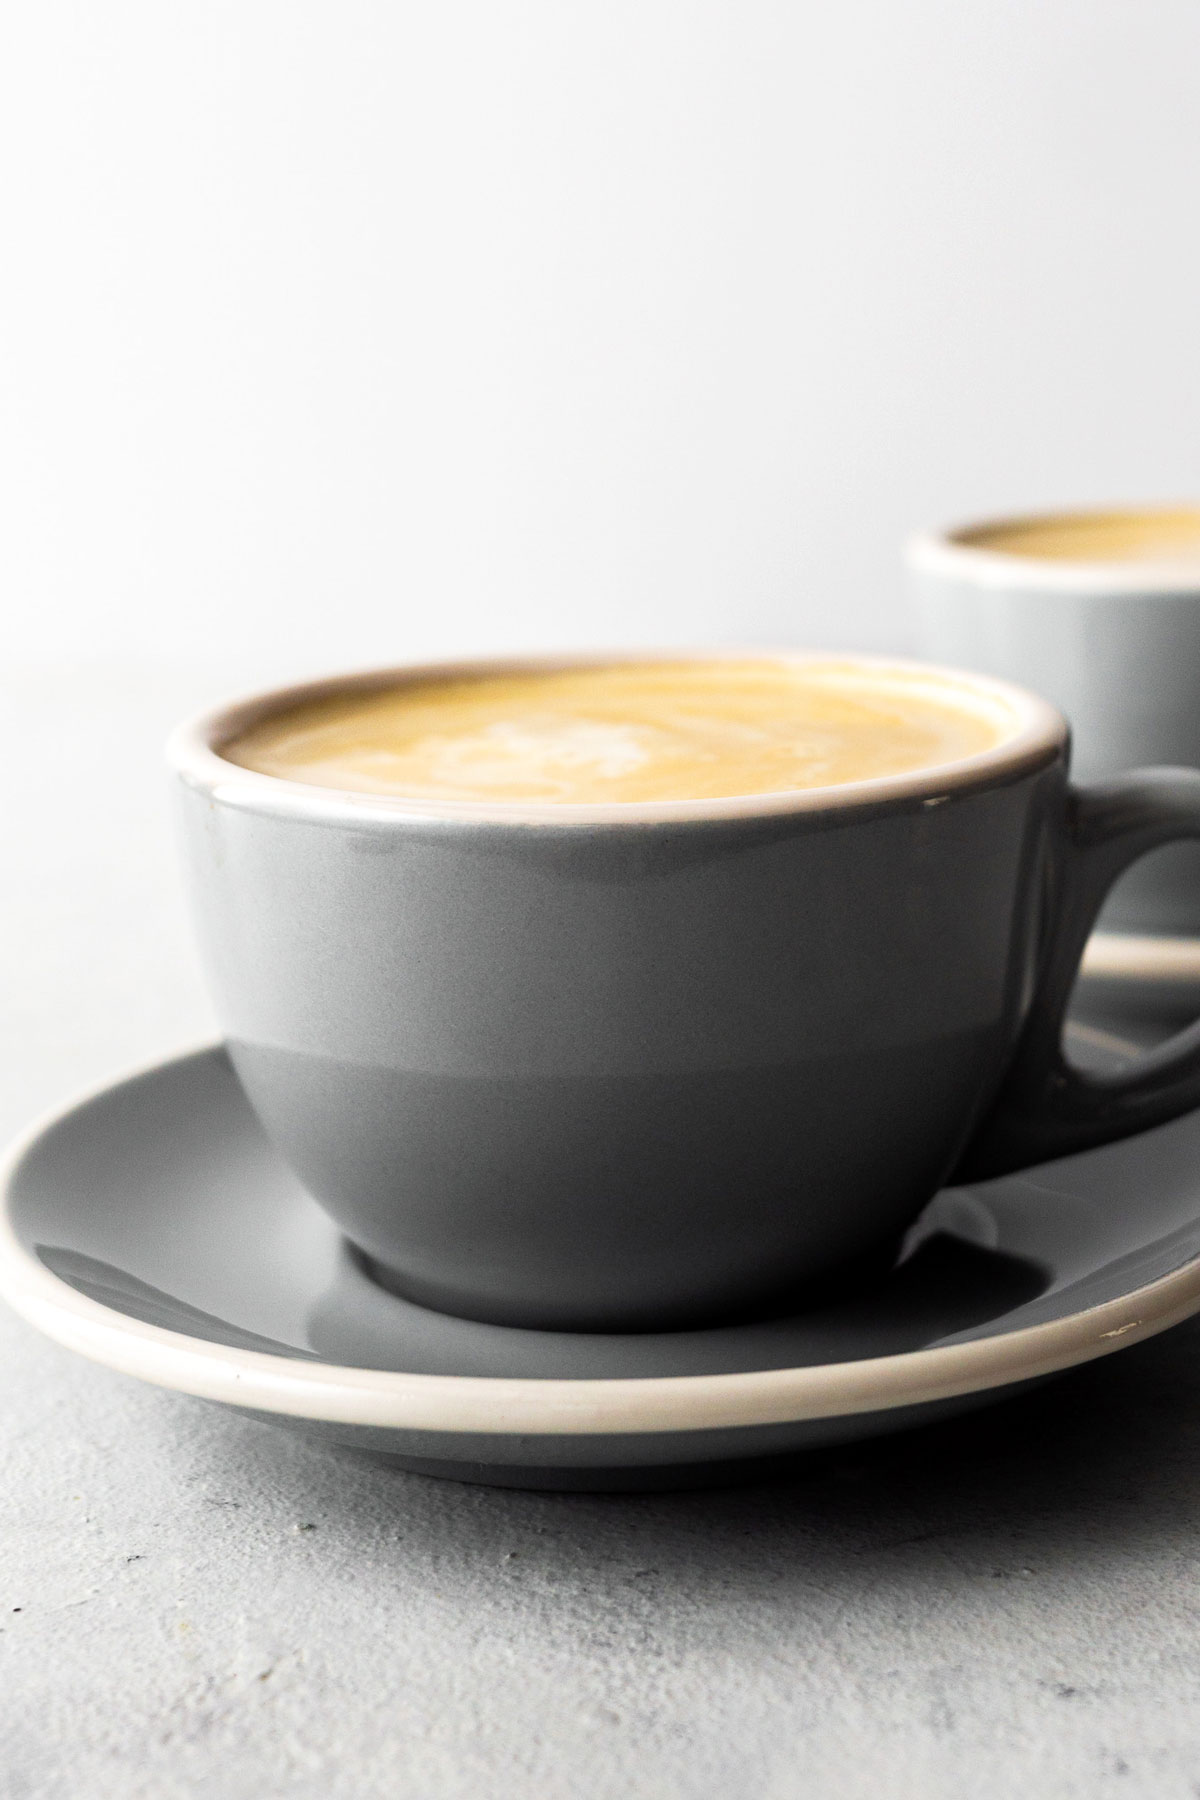 Flat white drink in a gray ceramic cup with saucer.